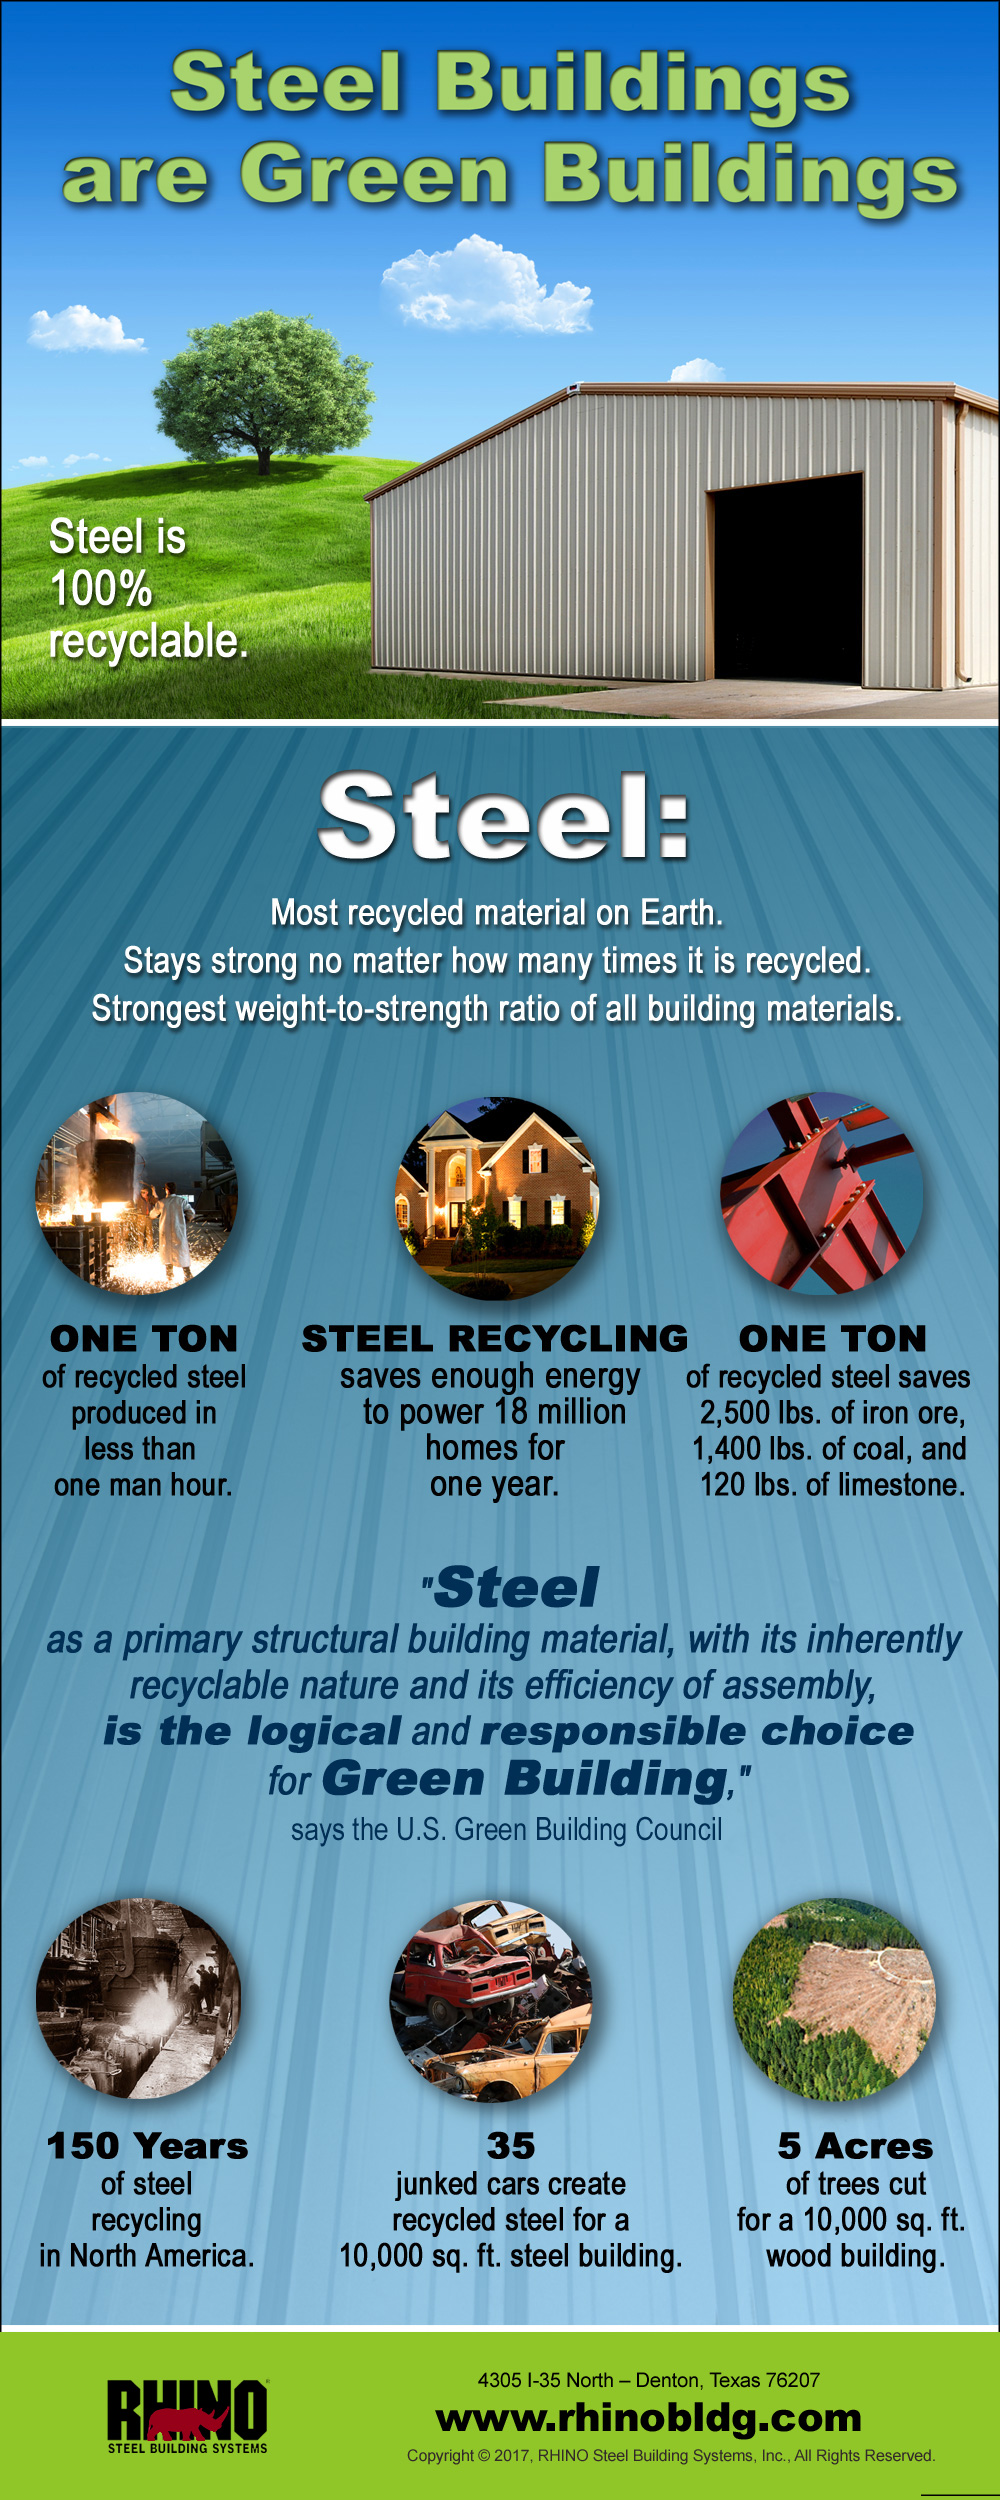 Infographic showing the green building advantages of steel.